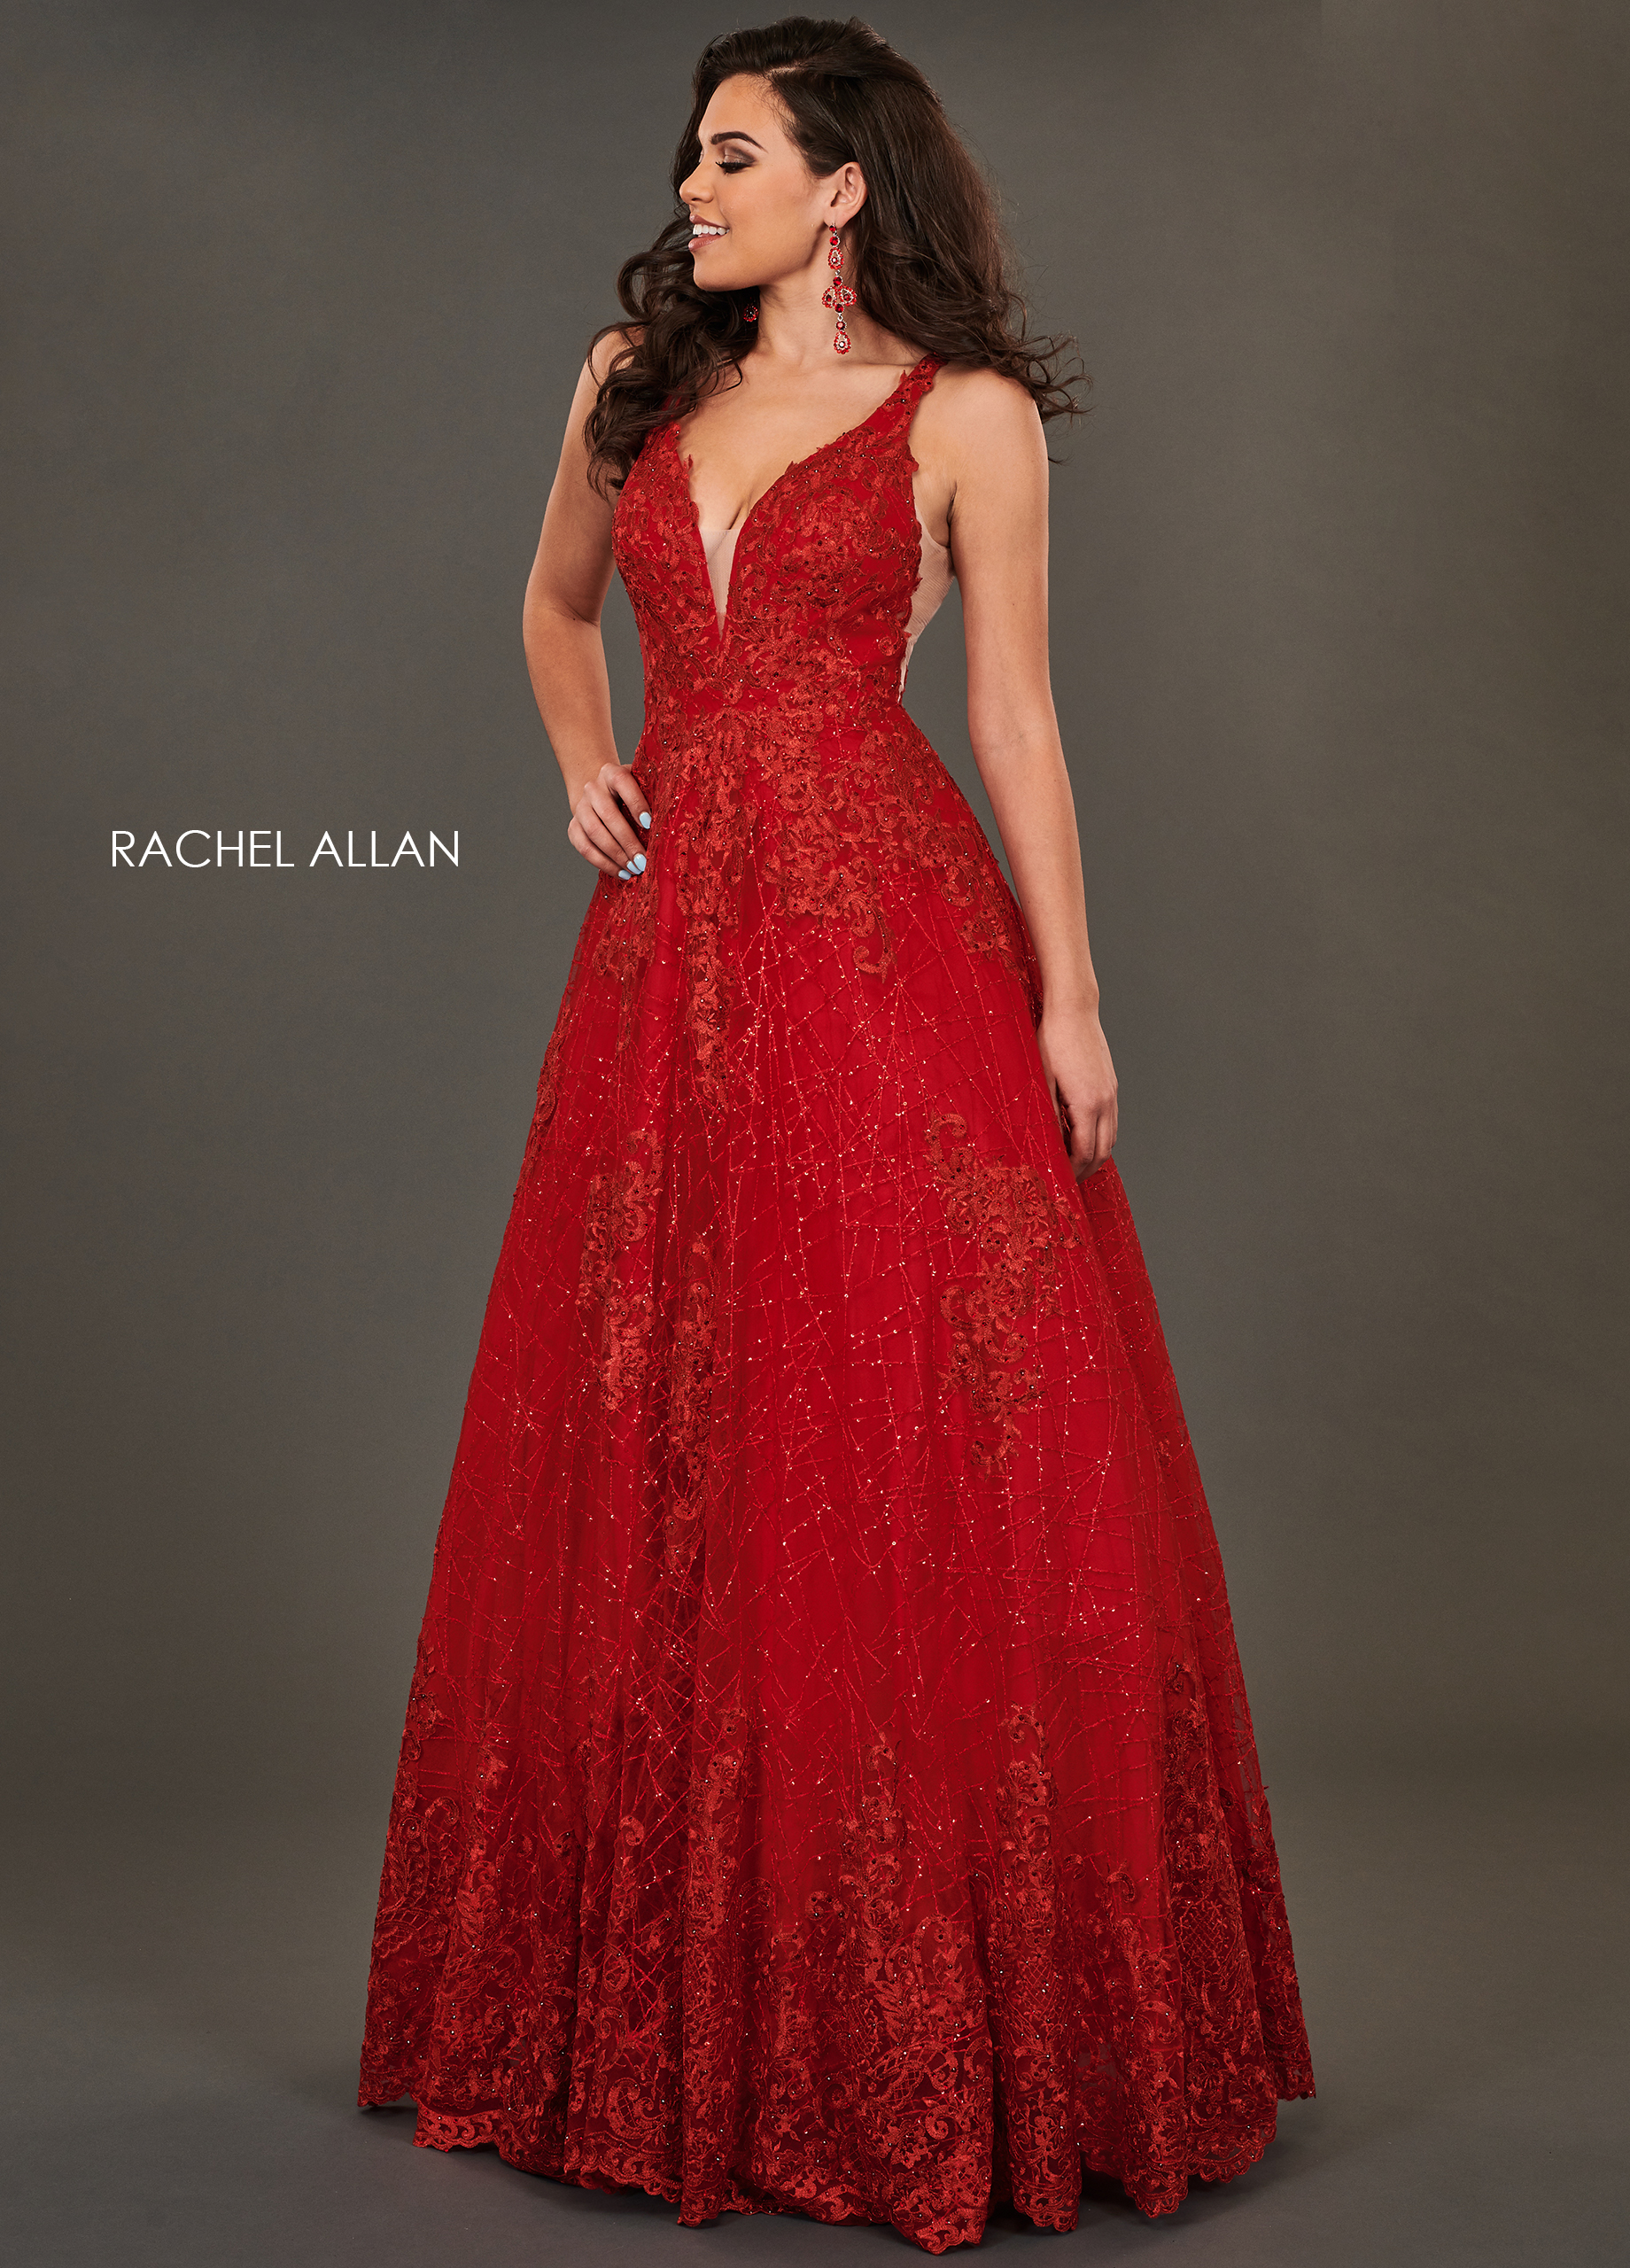 V-Neck A-Line Couture Dresses in Red Color